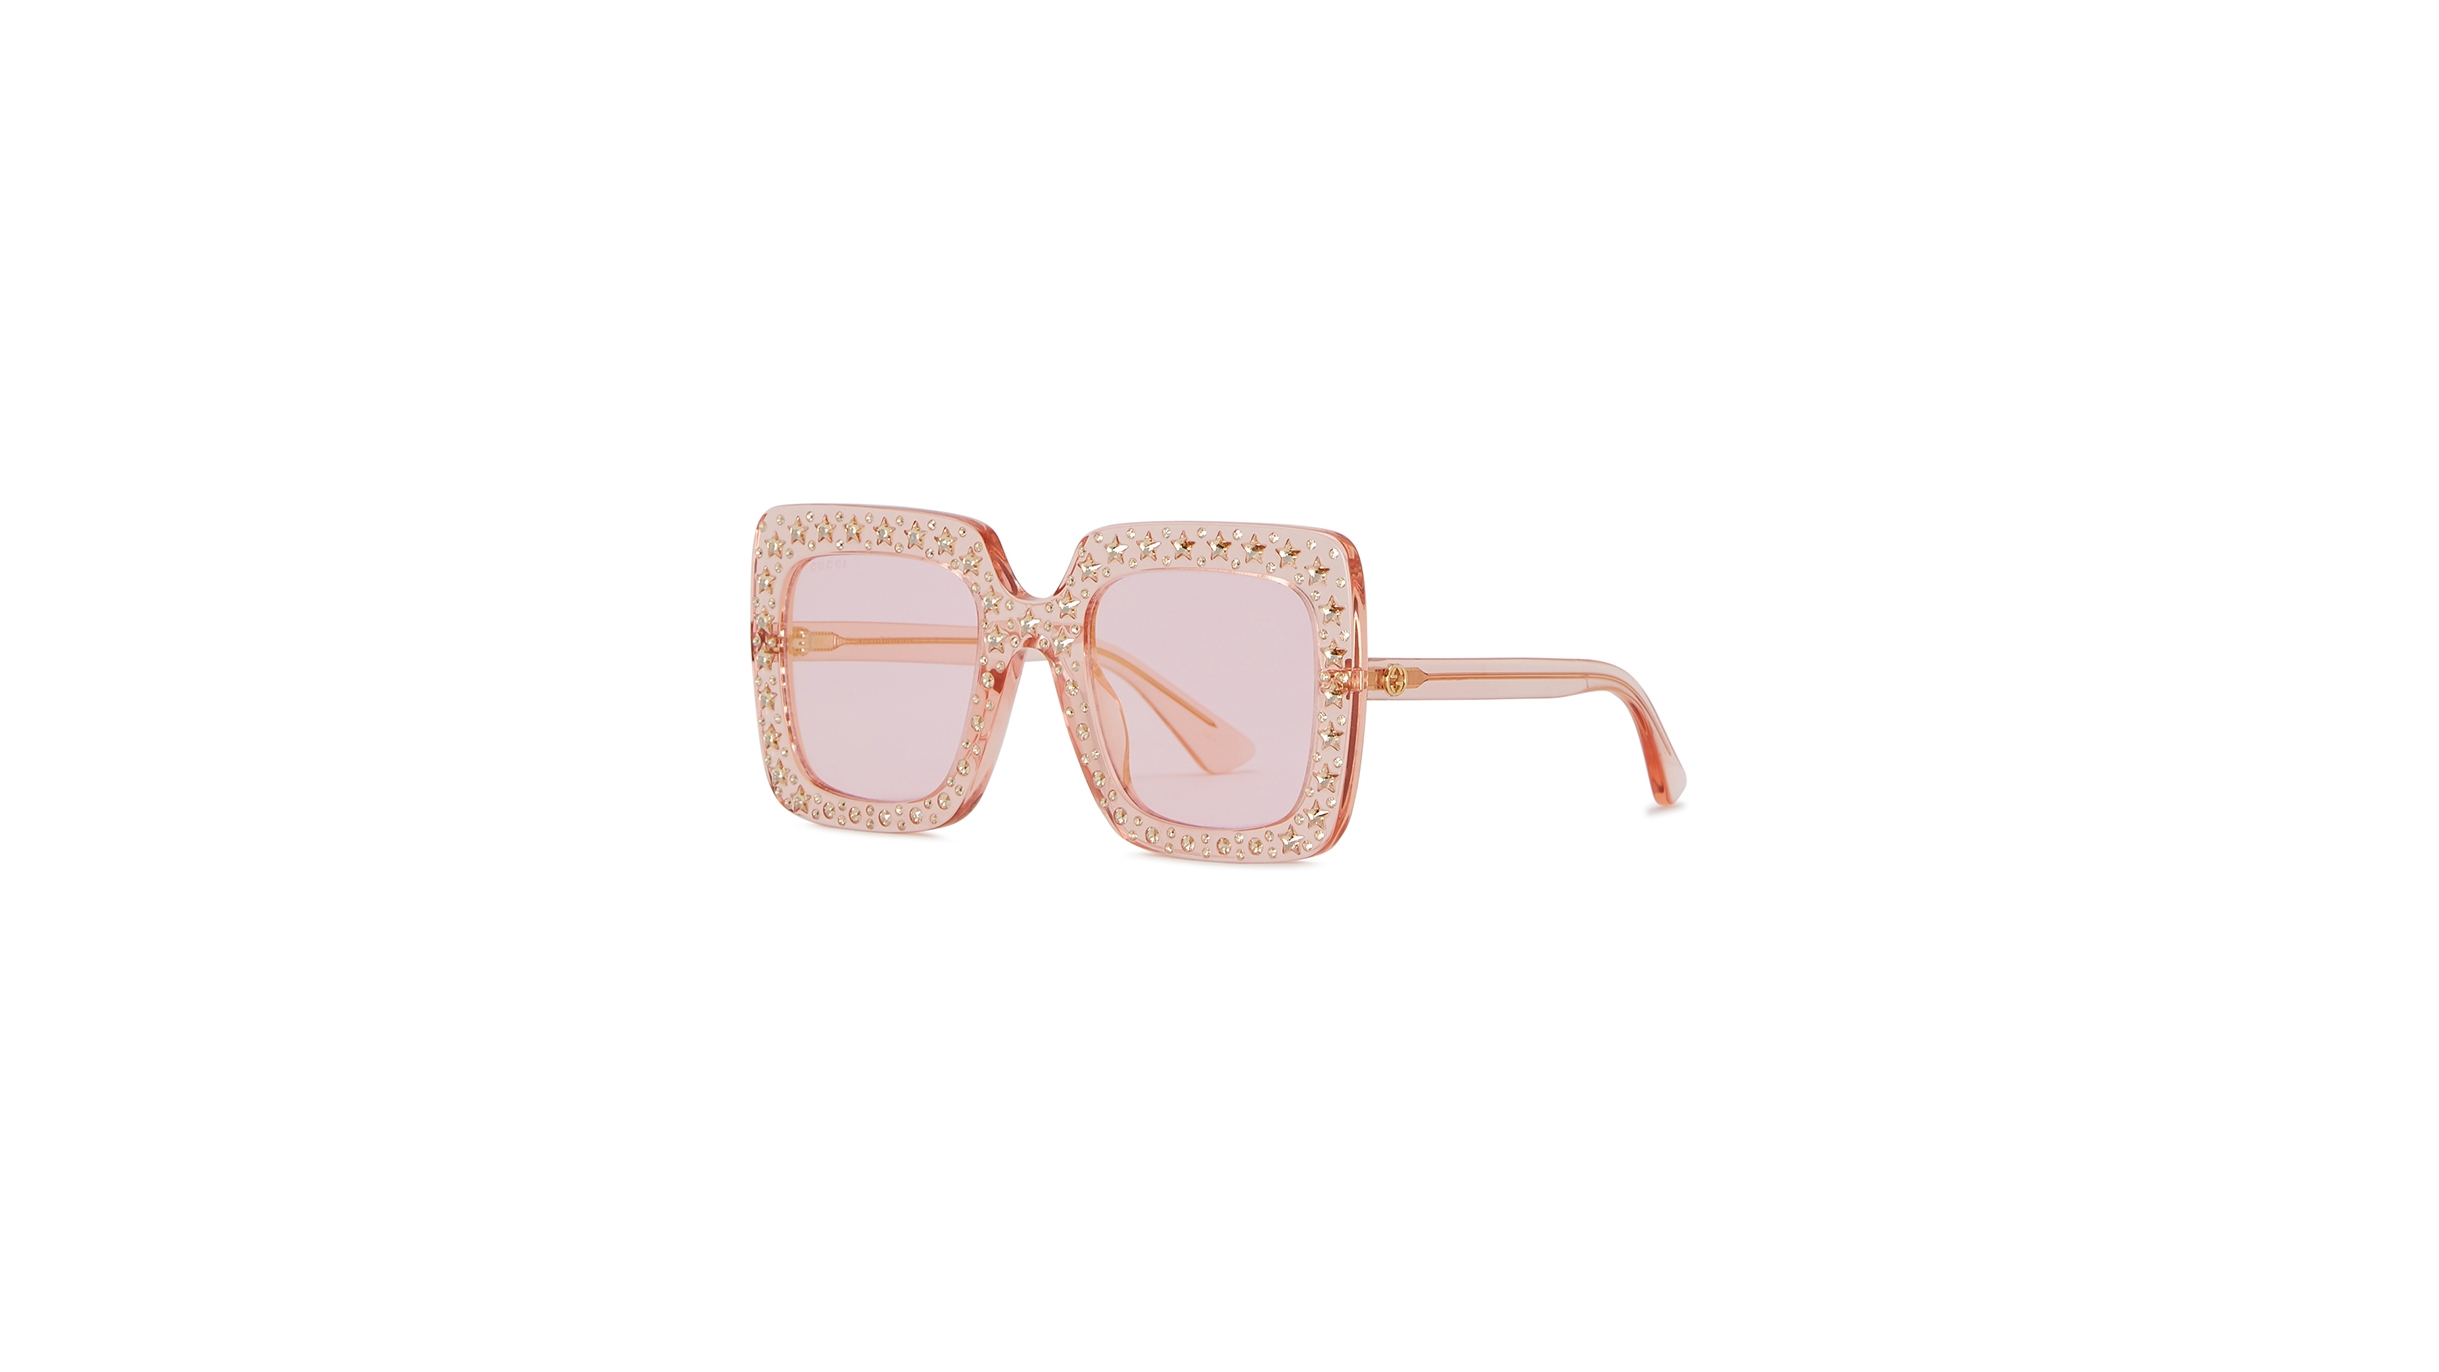 0bd7b55b36 Gucci Pink embellished oversized sunglasses - Harvey Nichols